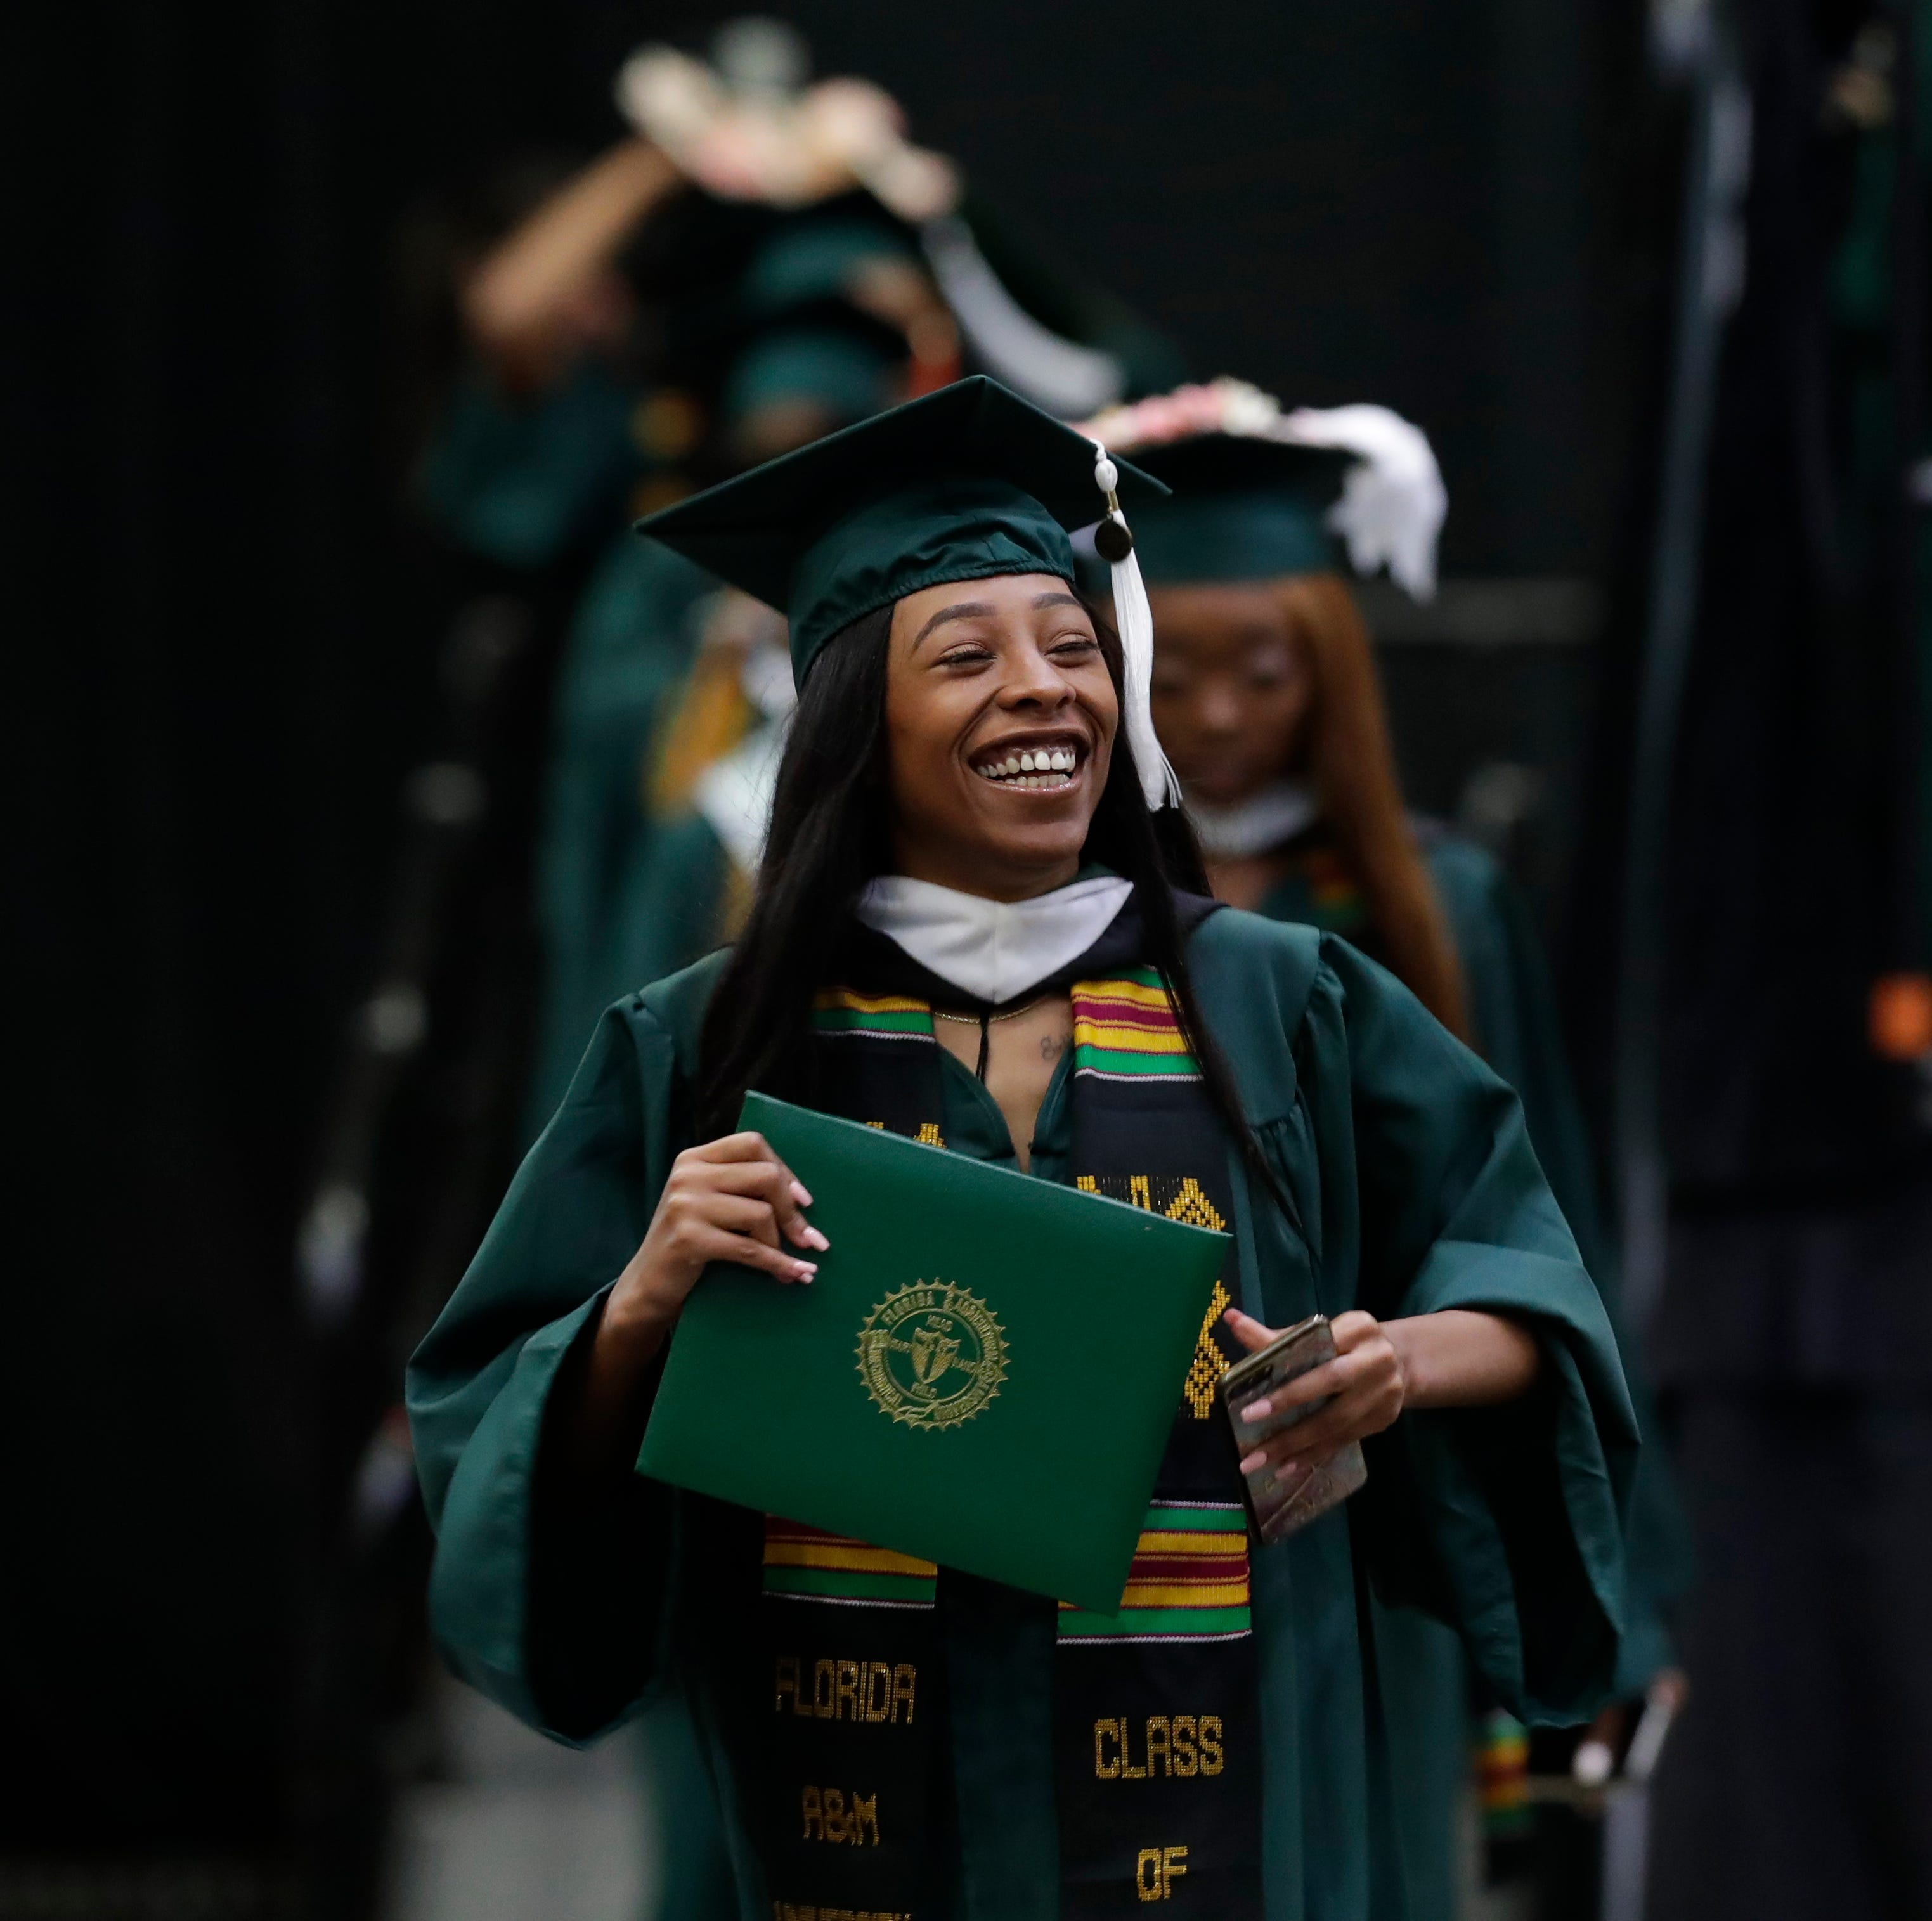 The faces of FAMU spring commencement in 59 graduation photos